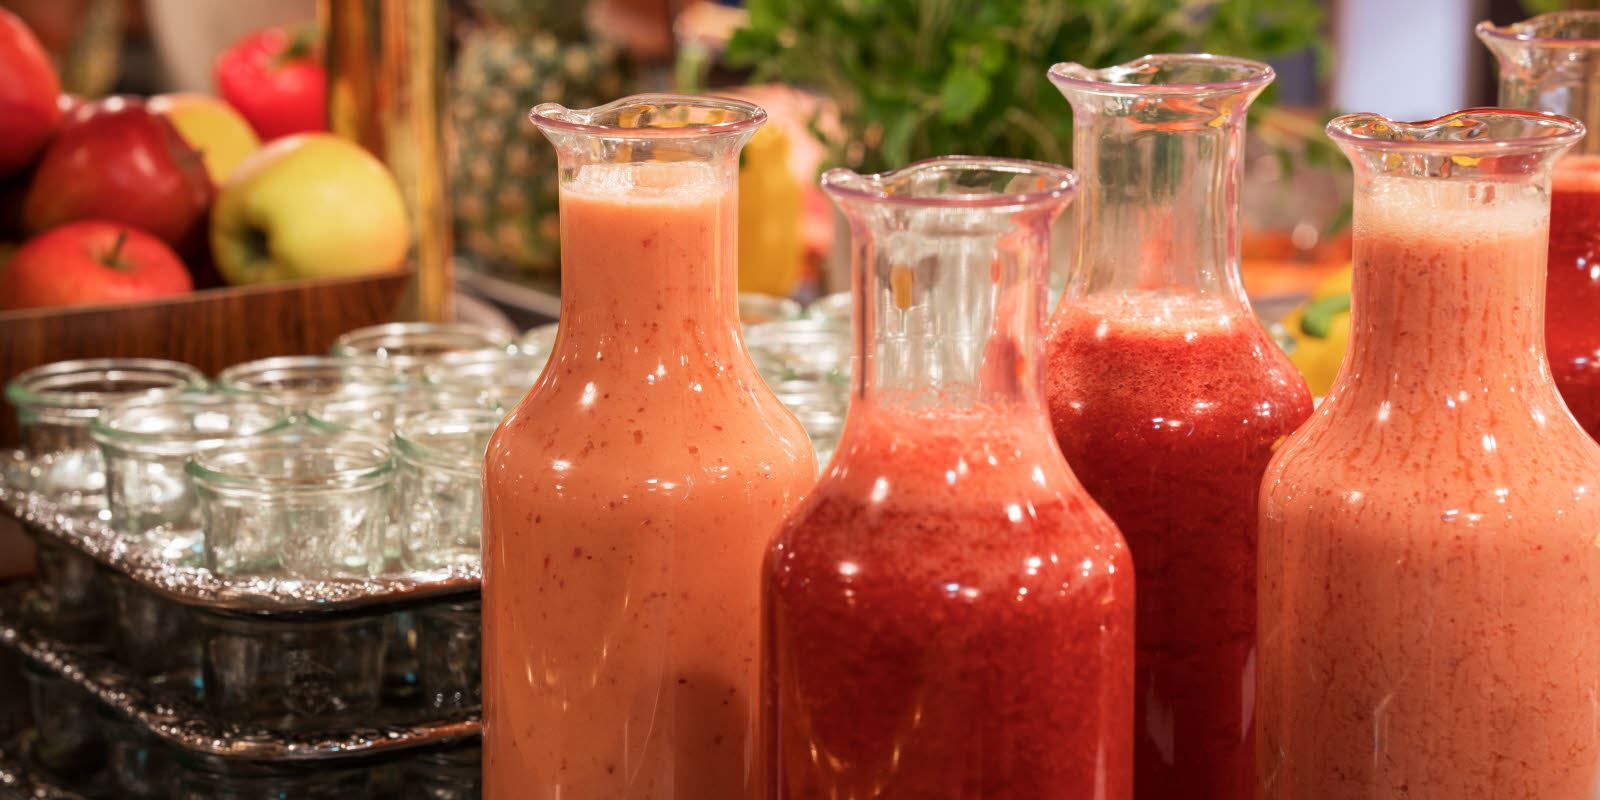 Smoothies in glass bottles at Thon Hotel Skeikampen